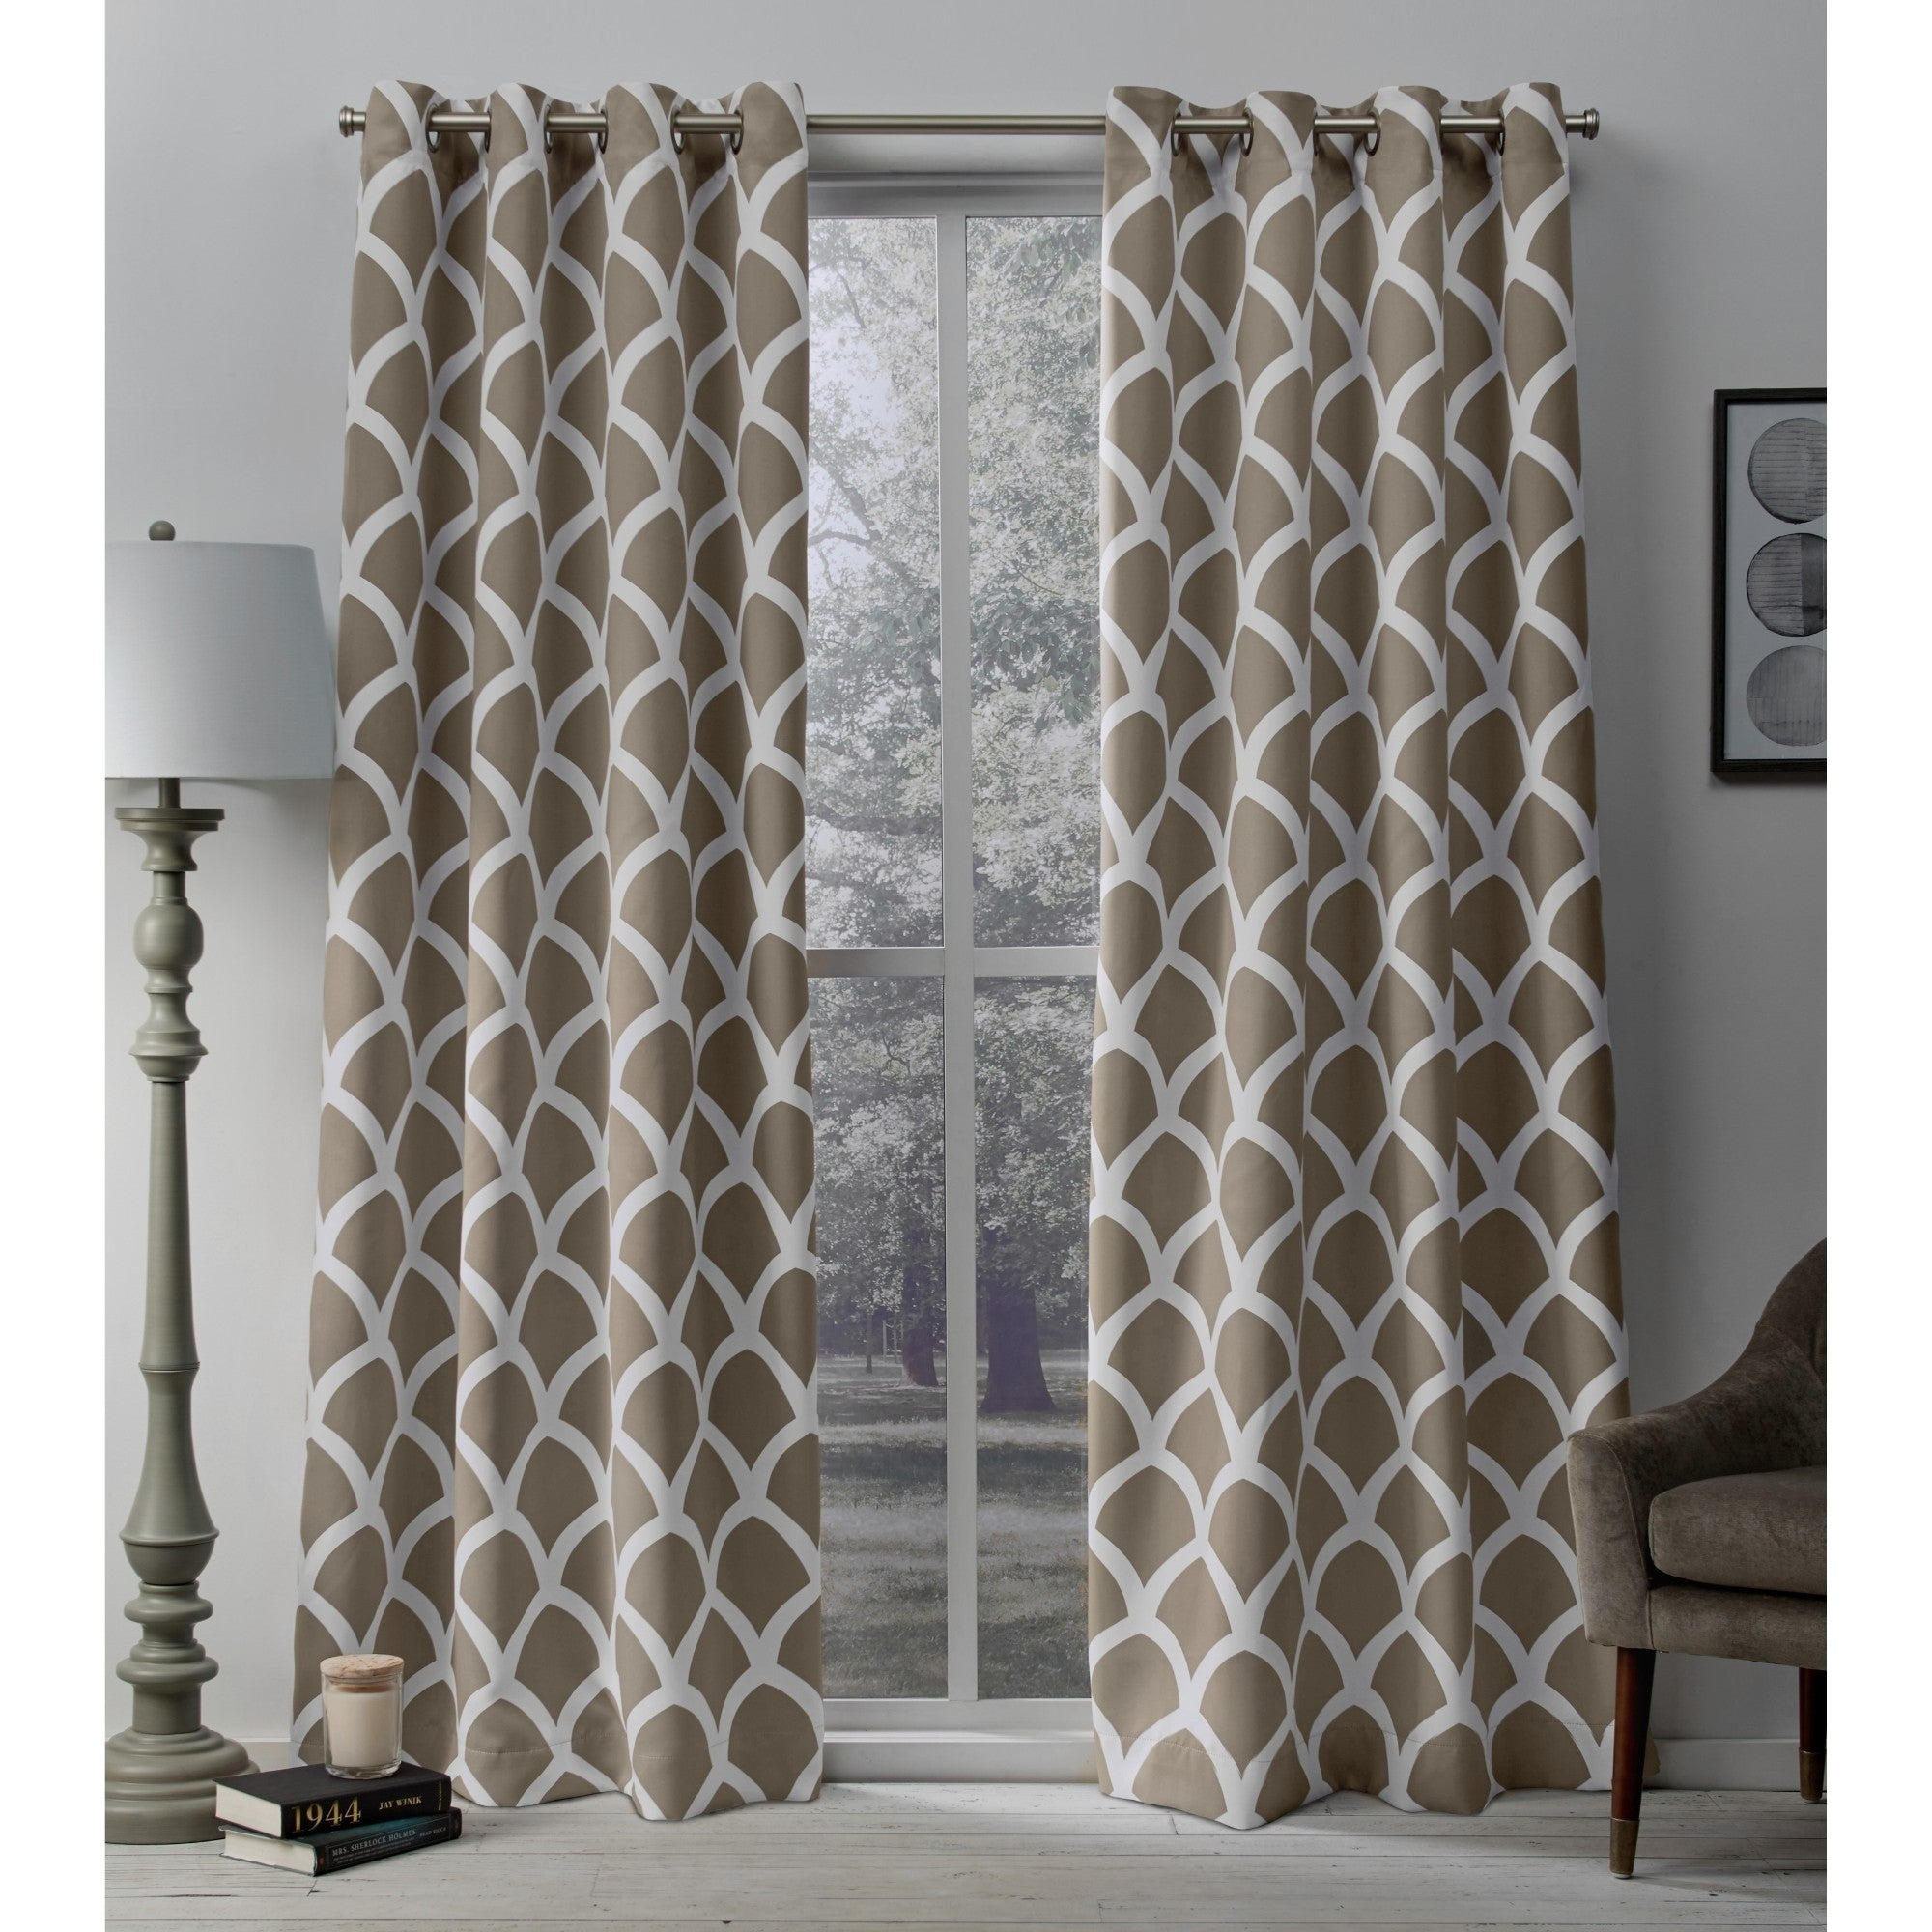 The Curated Nomad Ames Sateen Woven Blackout Grommet Top Curtain Panel Pair Regarding The Curated Nomad Duane Jacquard Grommet Top Curtain Panel Pairs (View 7 of 30)